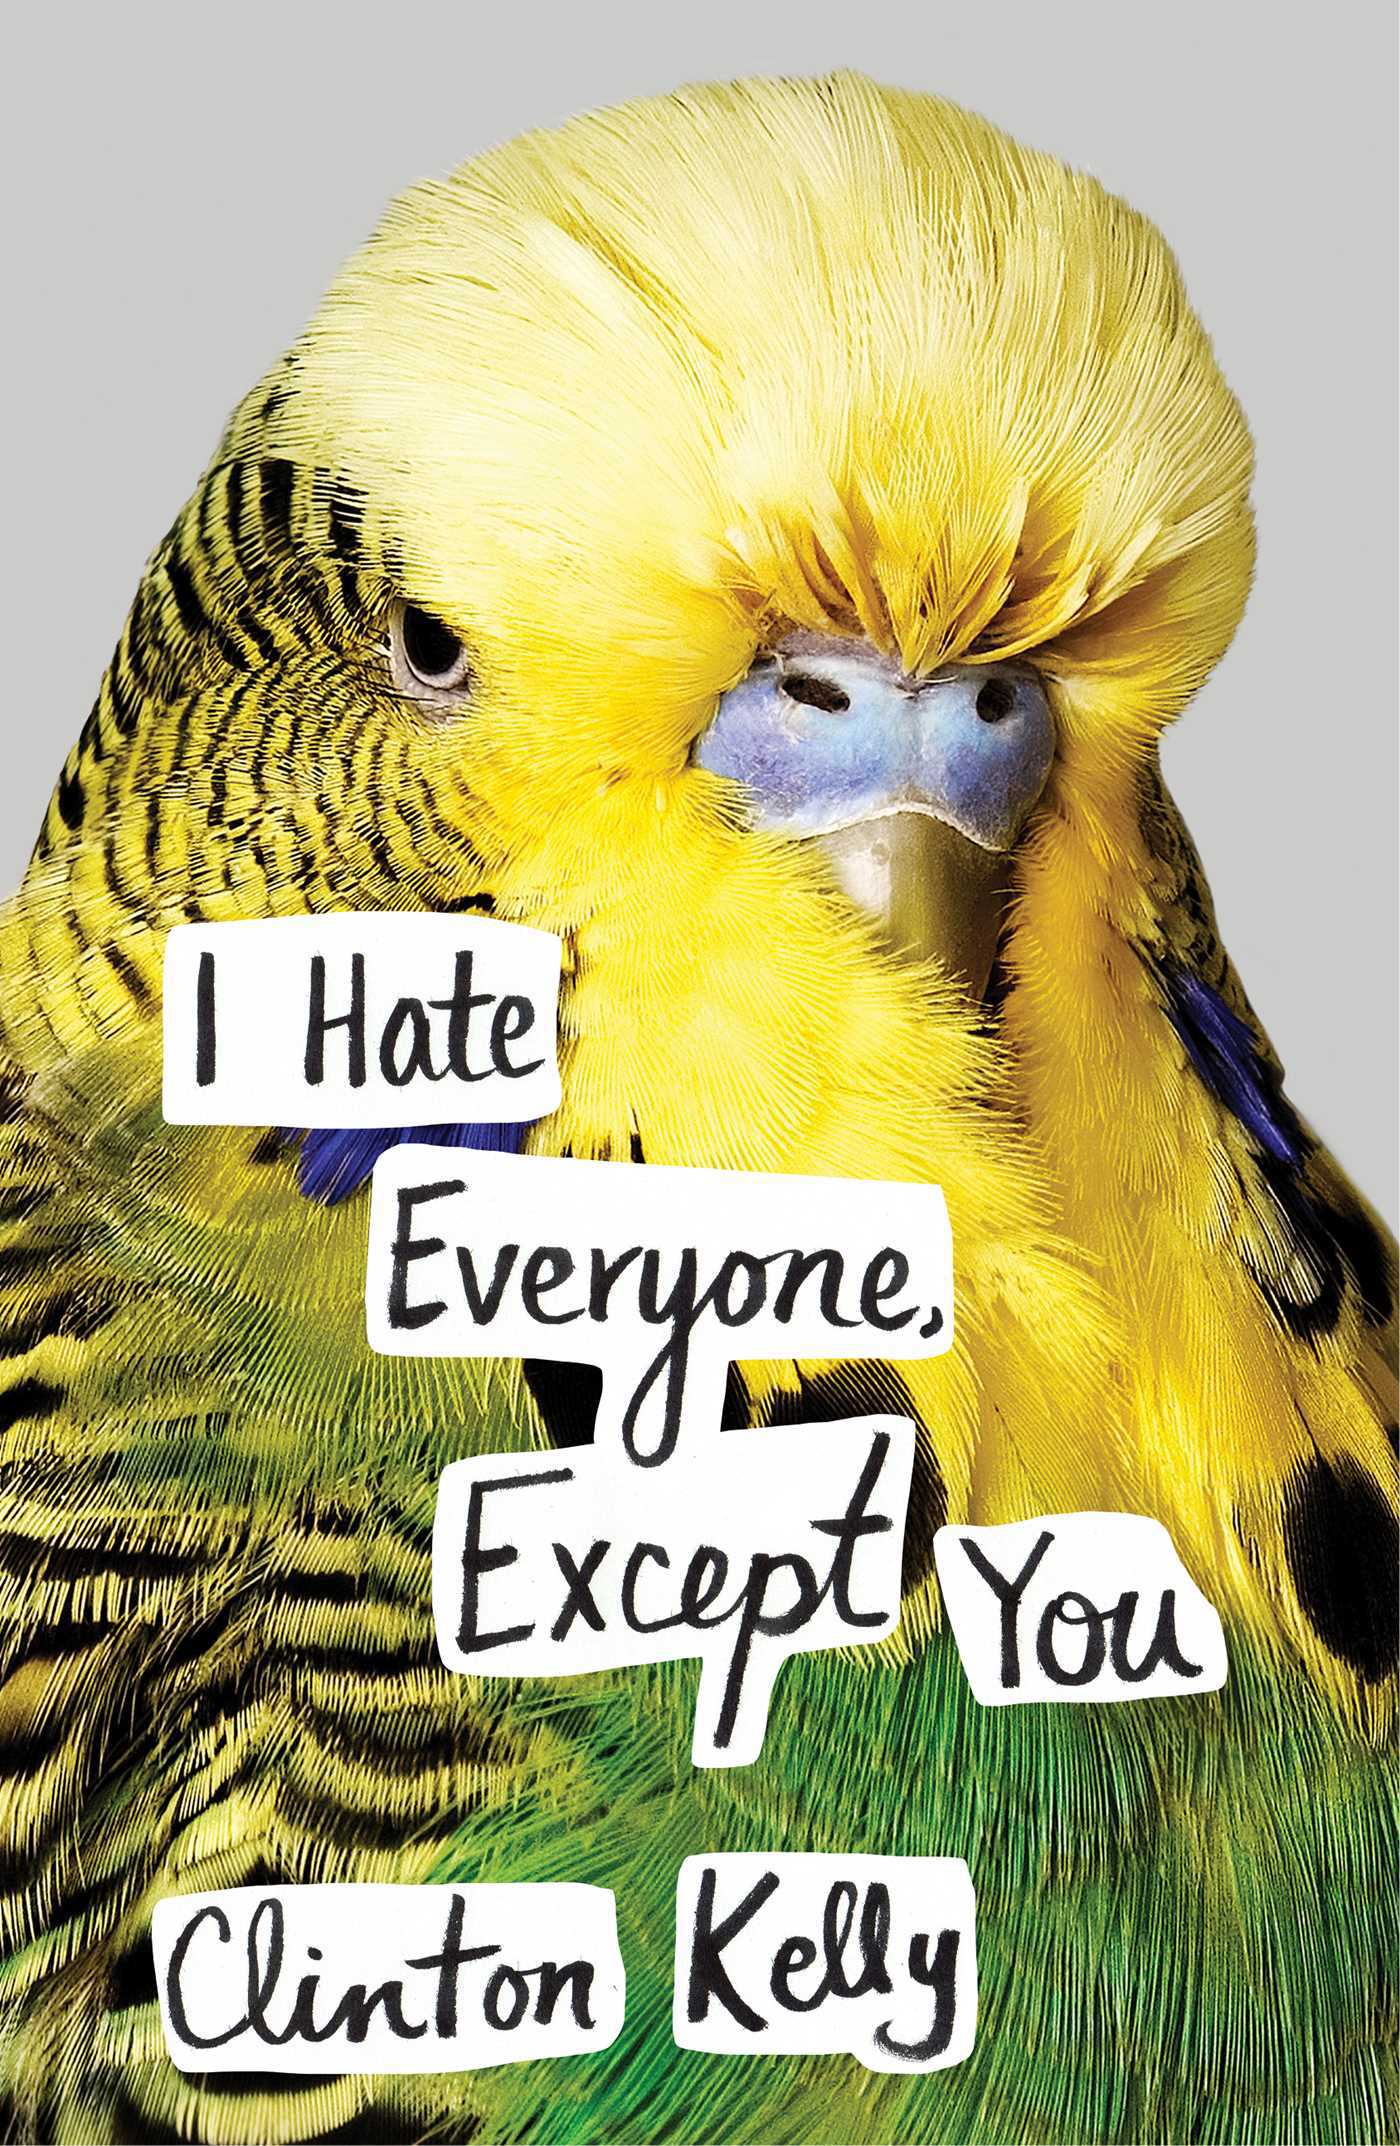 Clinton Kelly's 2017 released memoir, I Hate Everyone, Except You's cover. It has a yellow-green bird.